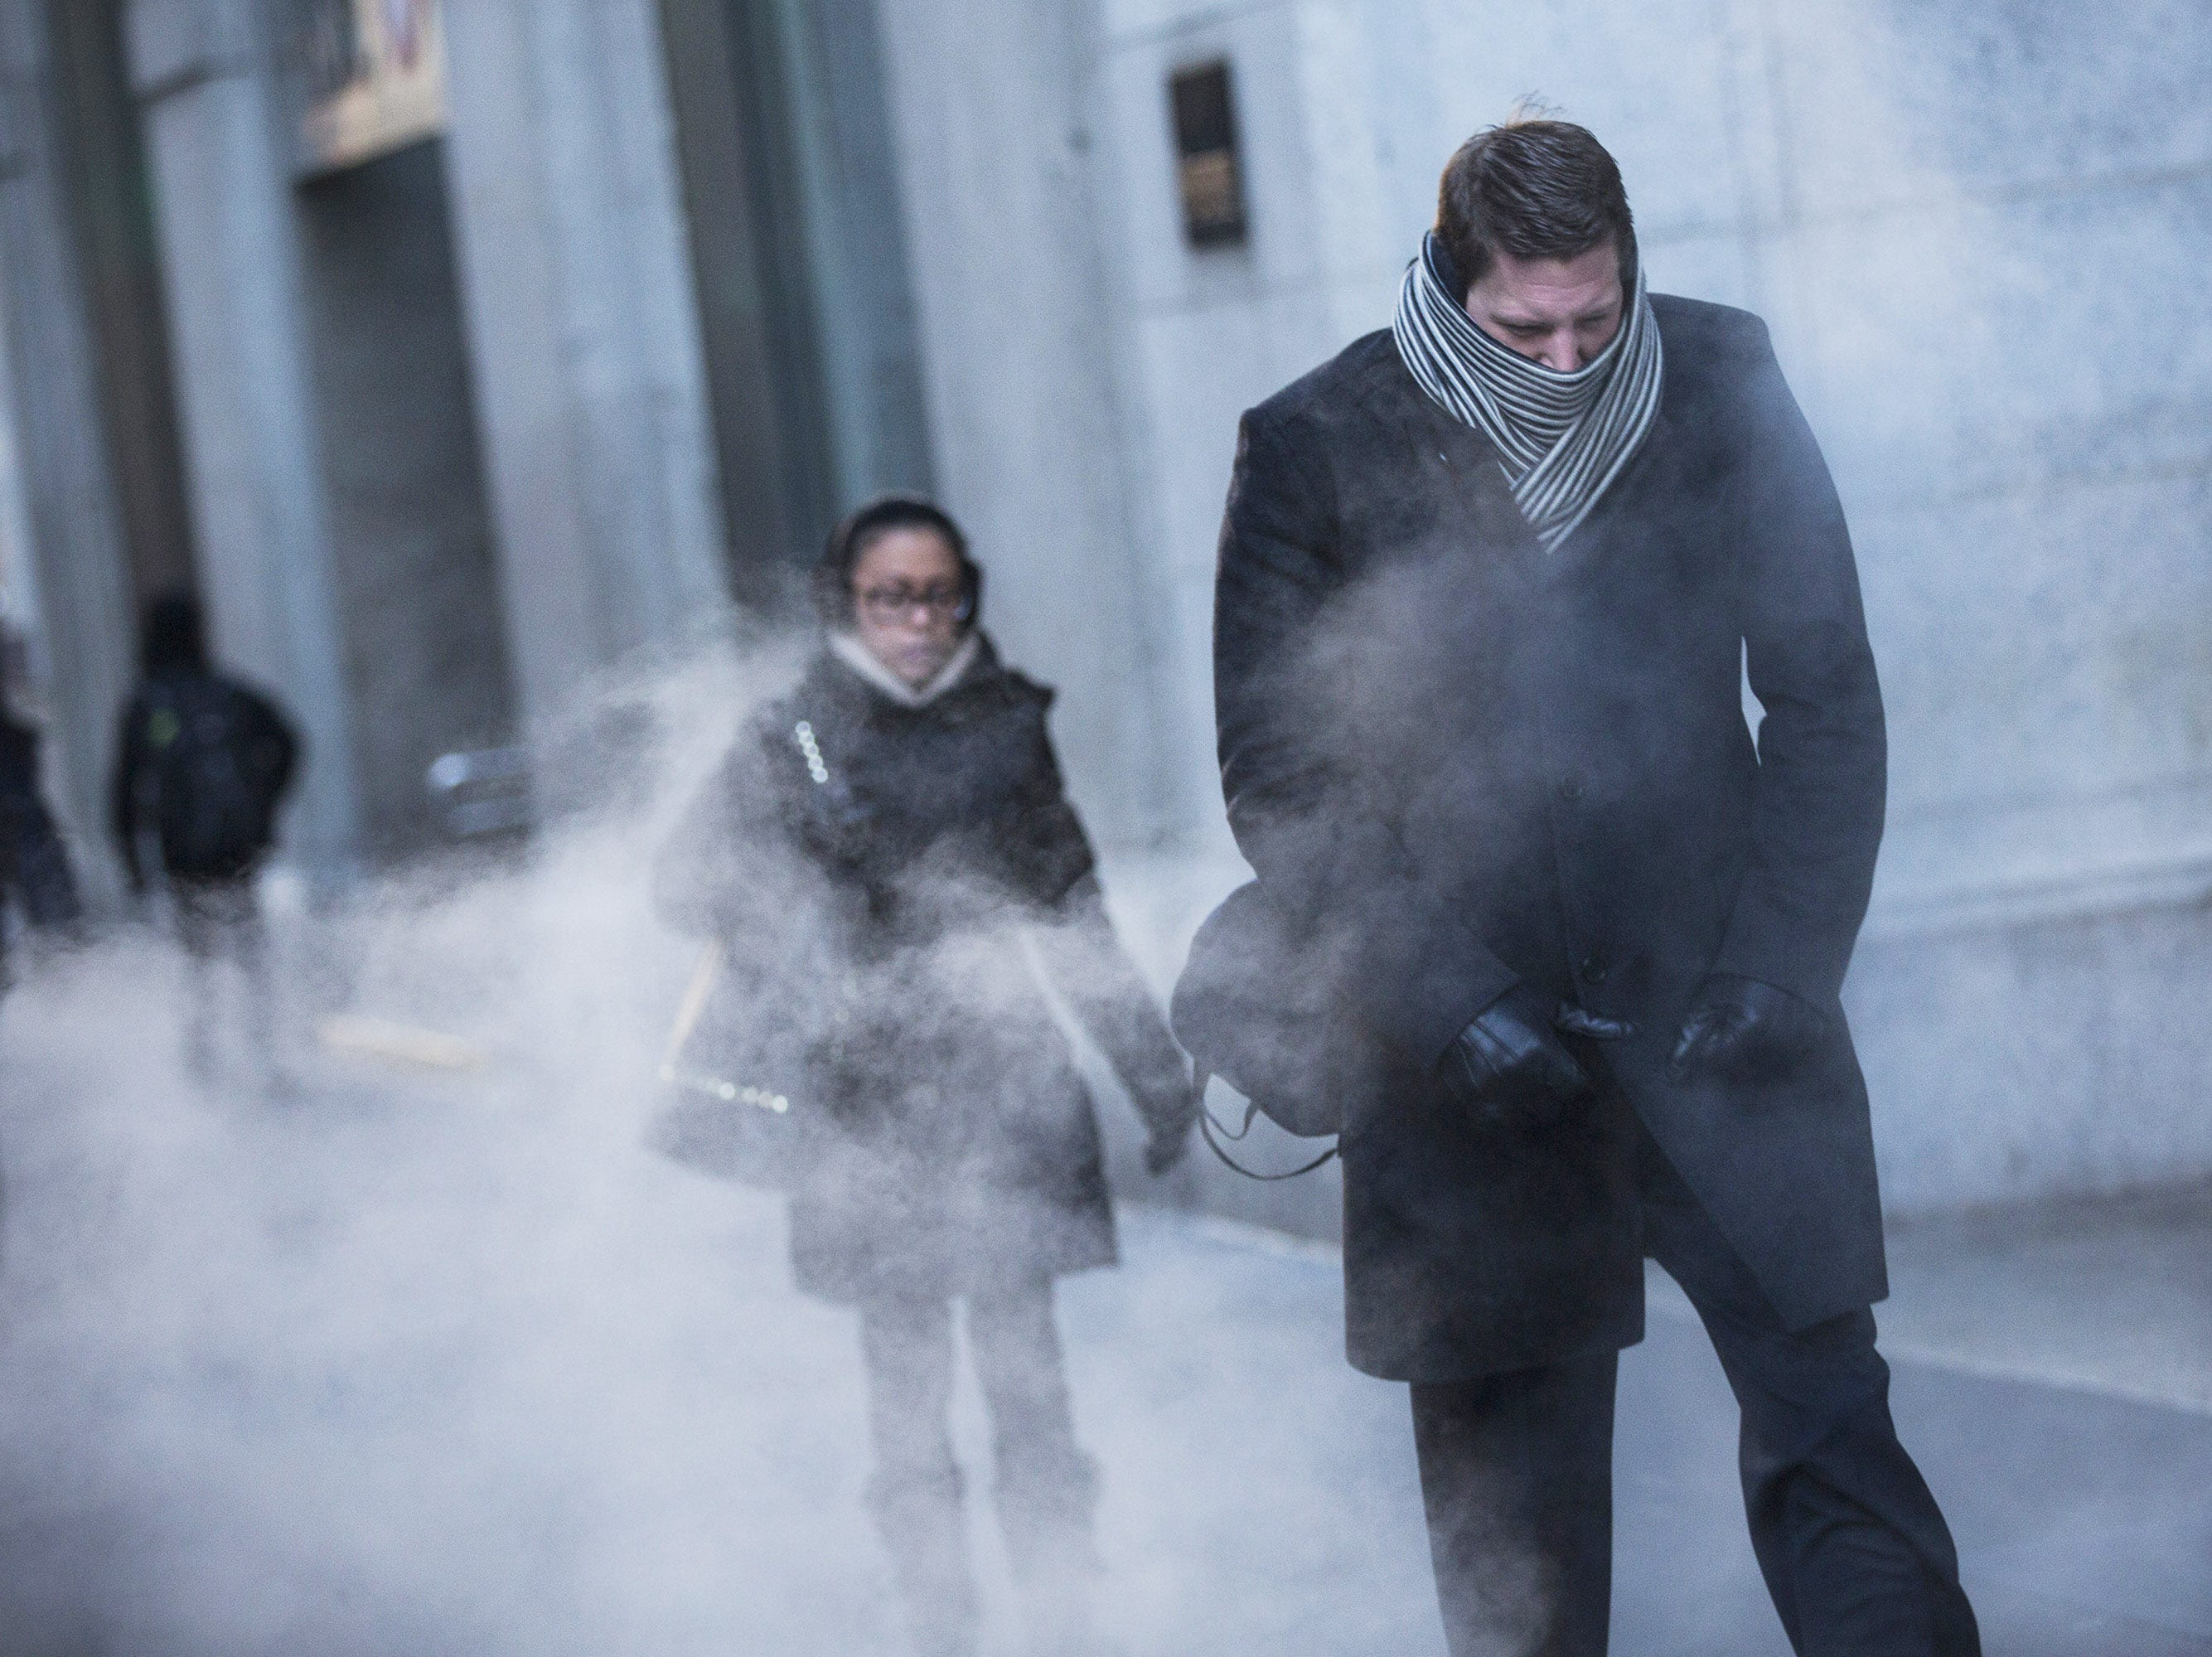 A man clenches his fists while walking past a steam vent in New York. A polar vortex has descended on much of North America, coming down from the Arctic, bringing record-freezing temperatures across much of the country.